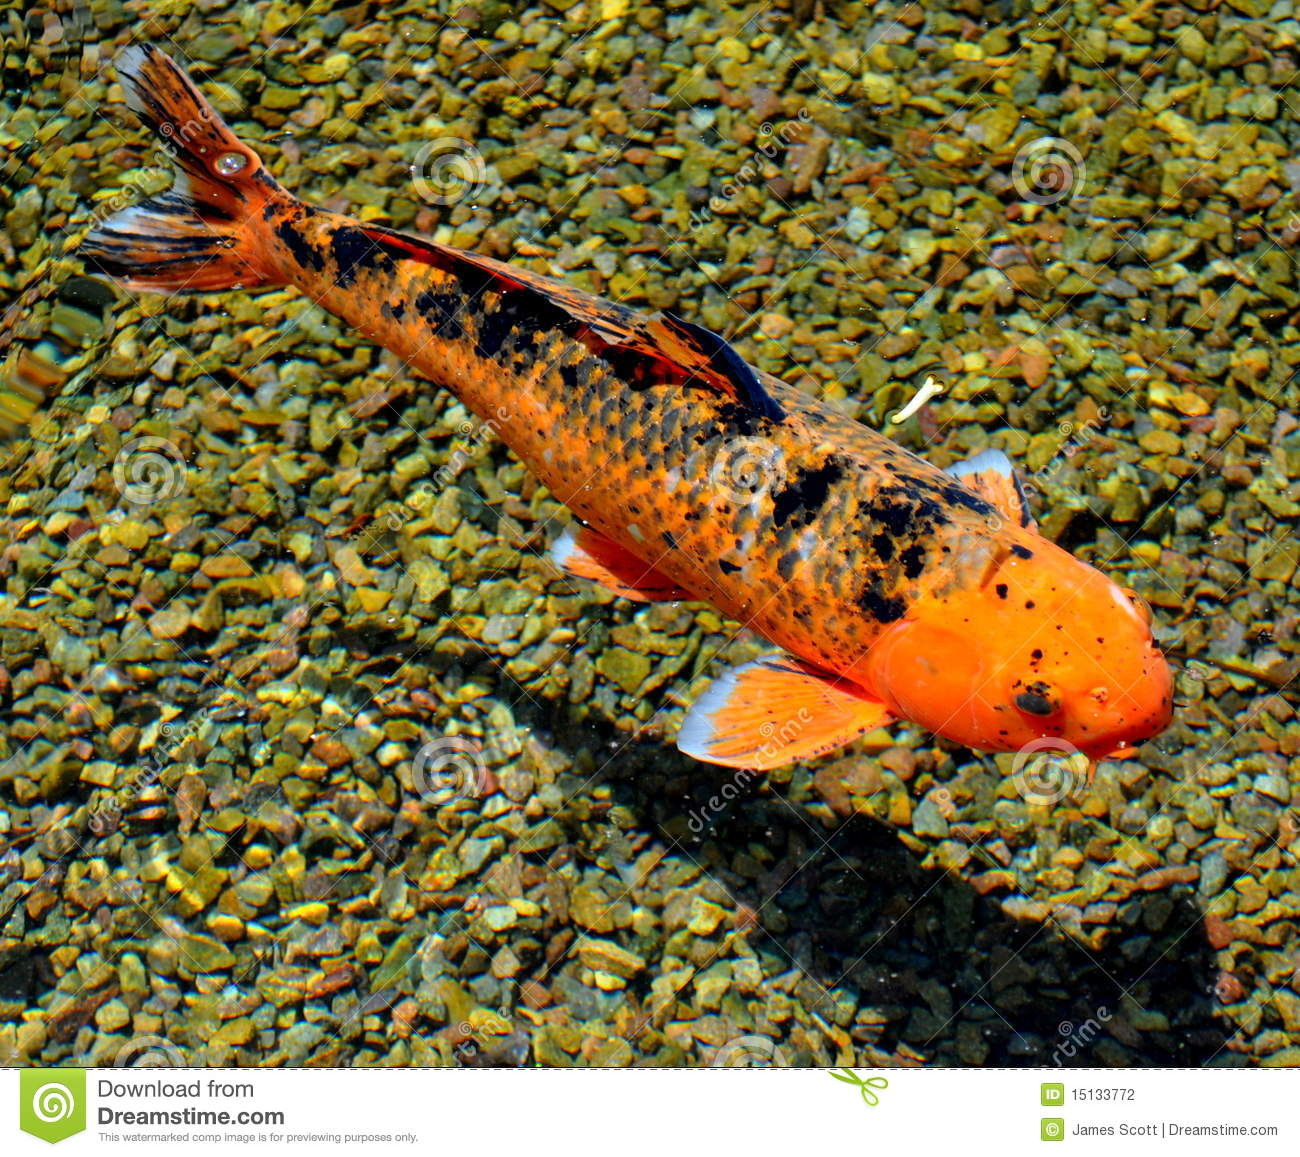 Koi fish nishikigoi stock photography image 15133772 for Nishikigoi koi